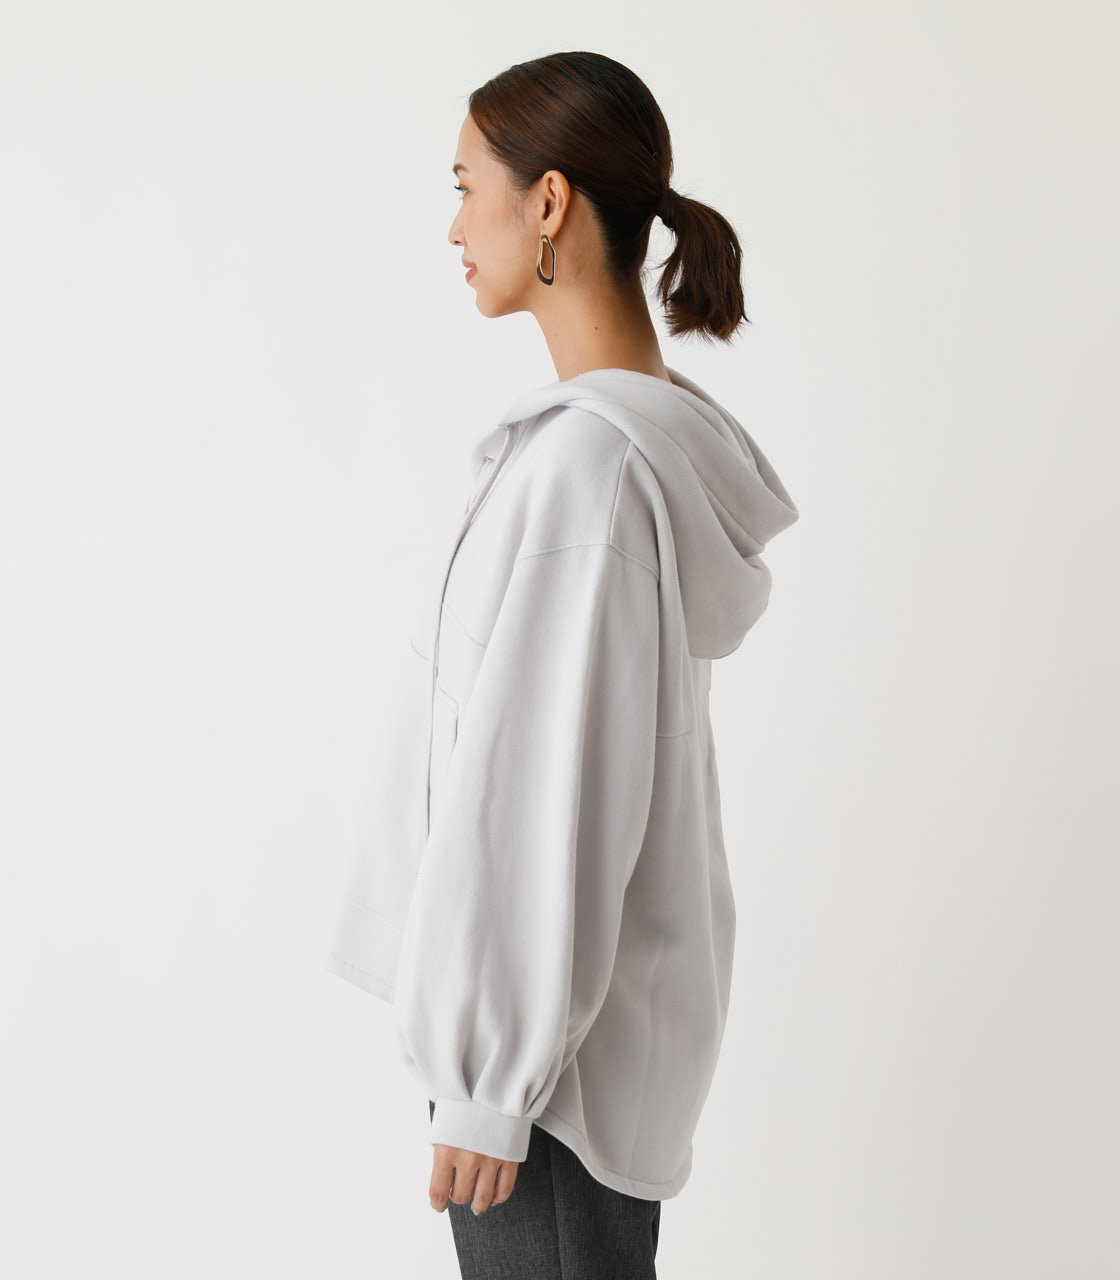 LACE-UP LOOSE HOODIE/レースアップルーズフーディ 詳細画像 L/GRY 5